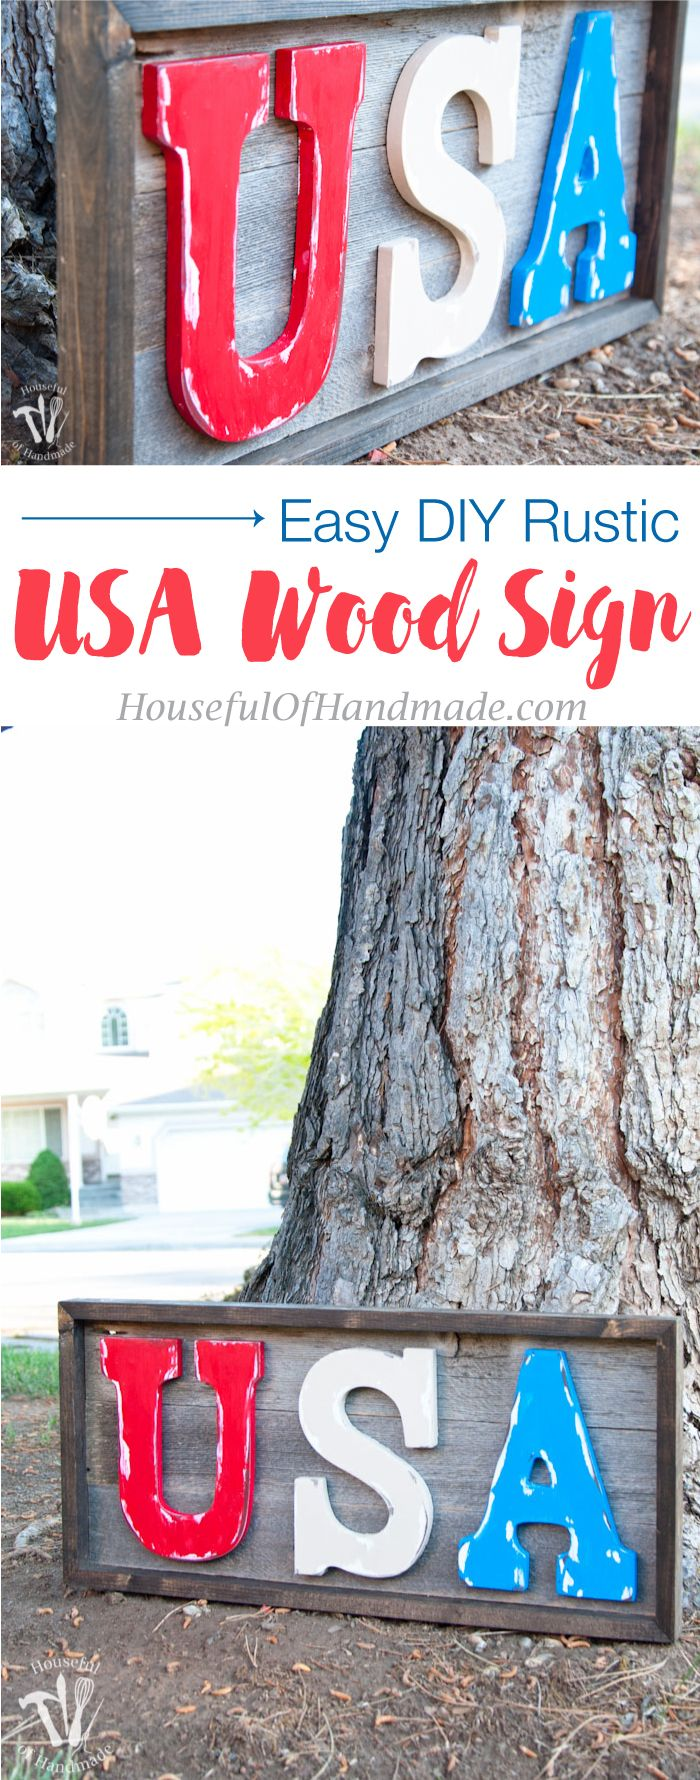 Make this easy DIY rustic USA wood sign for your 4th of July decor in just a few hours.  Tutorial from Housefulofhandmade.com